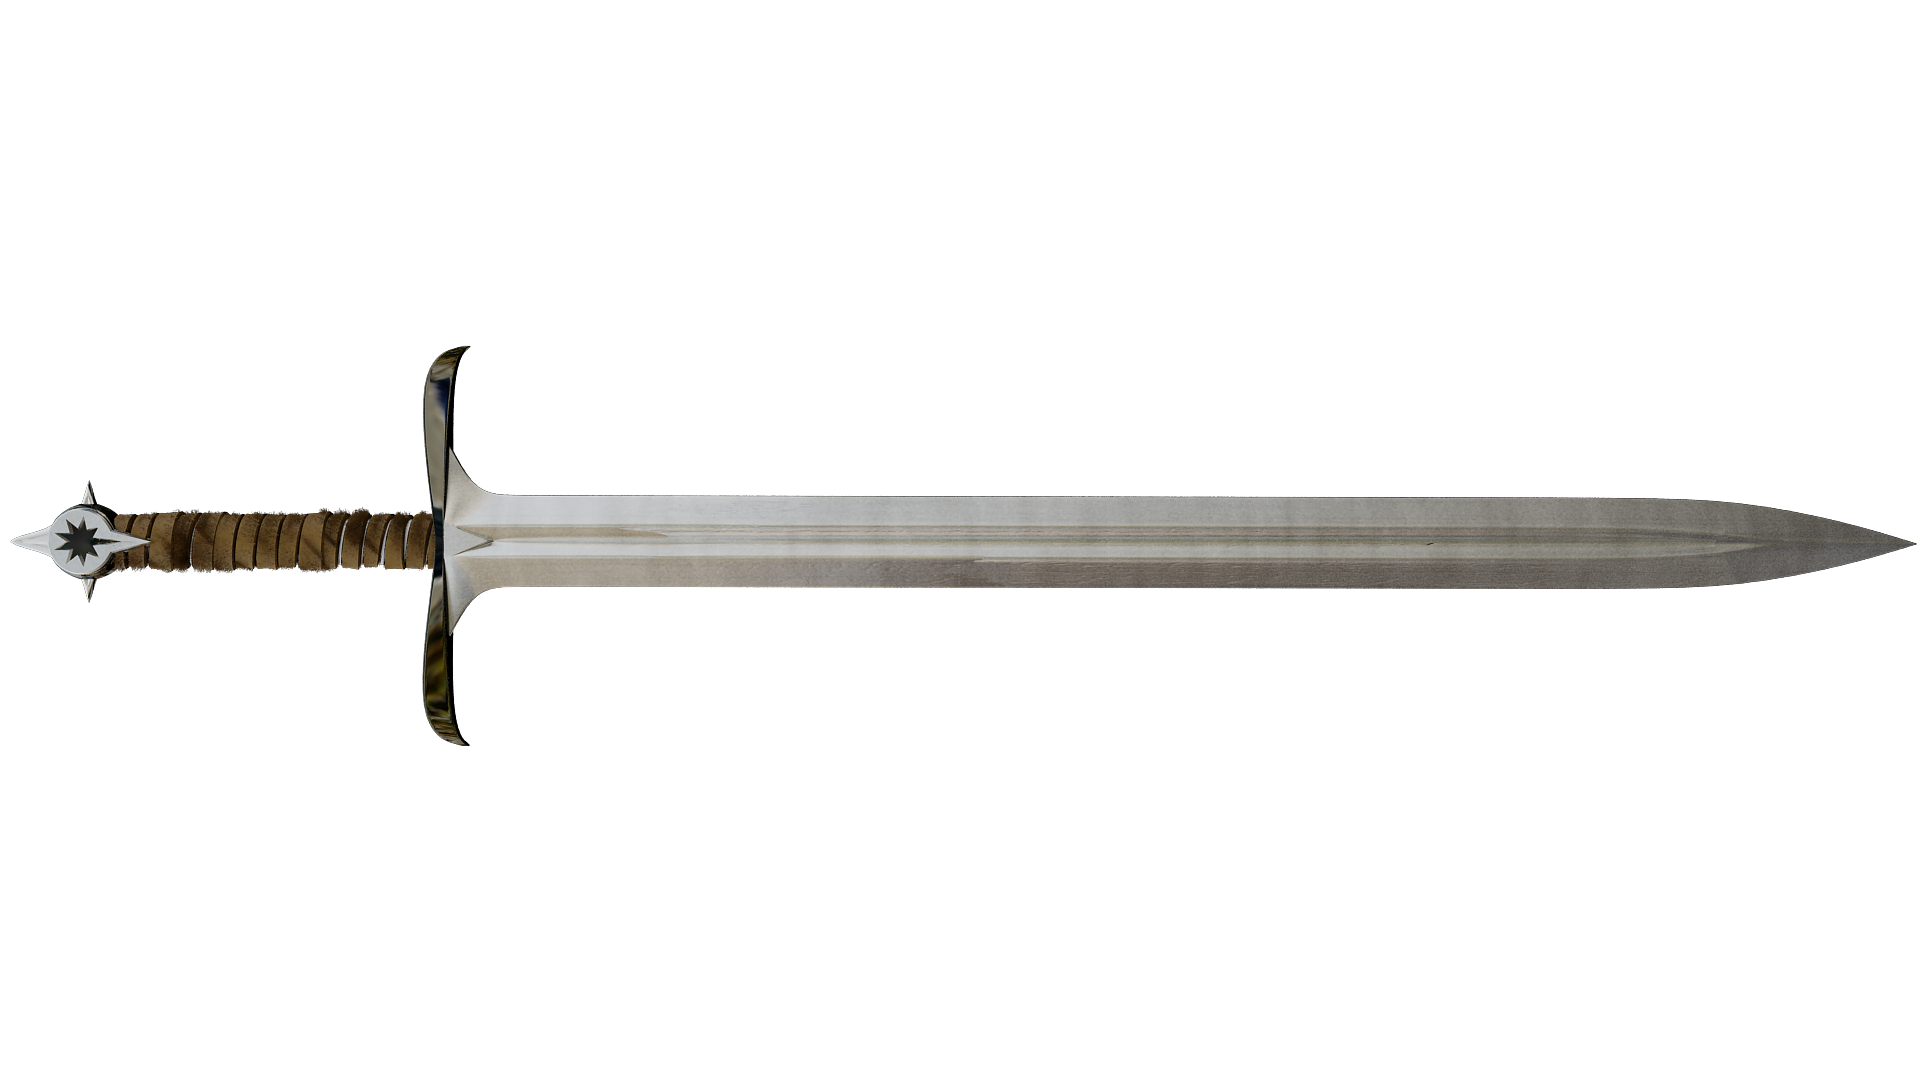 Choix d'une faction - Page 3 Sword-hd-png-sword-png-image-1920